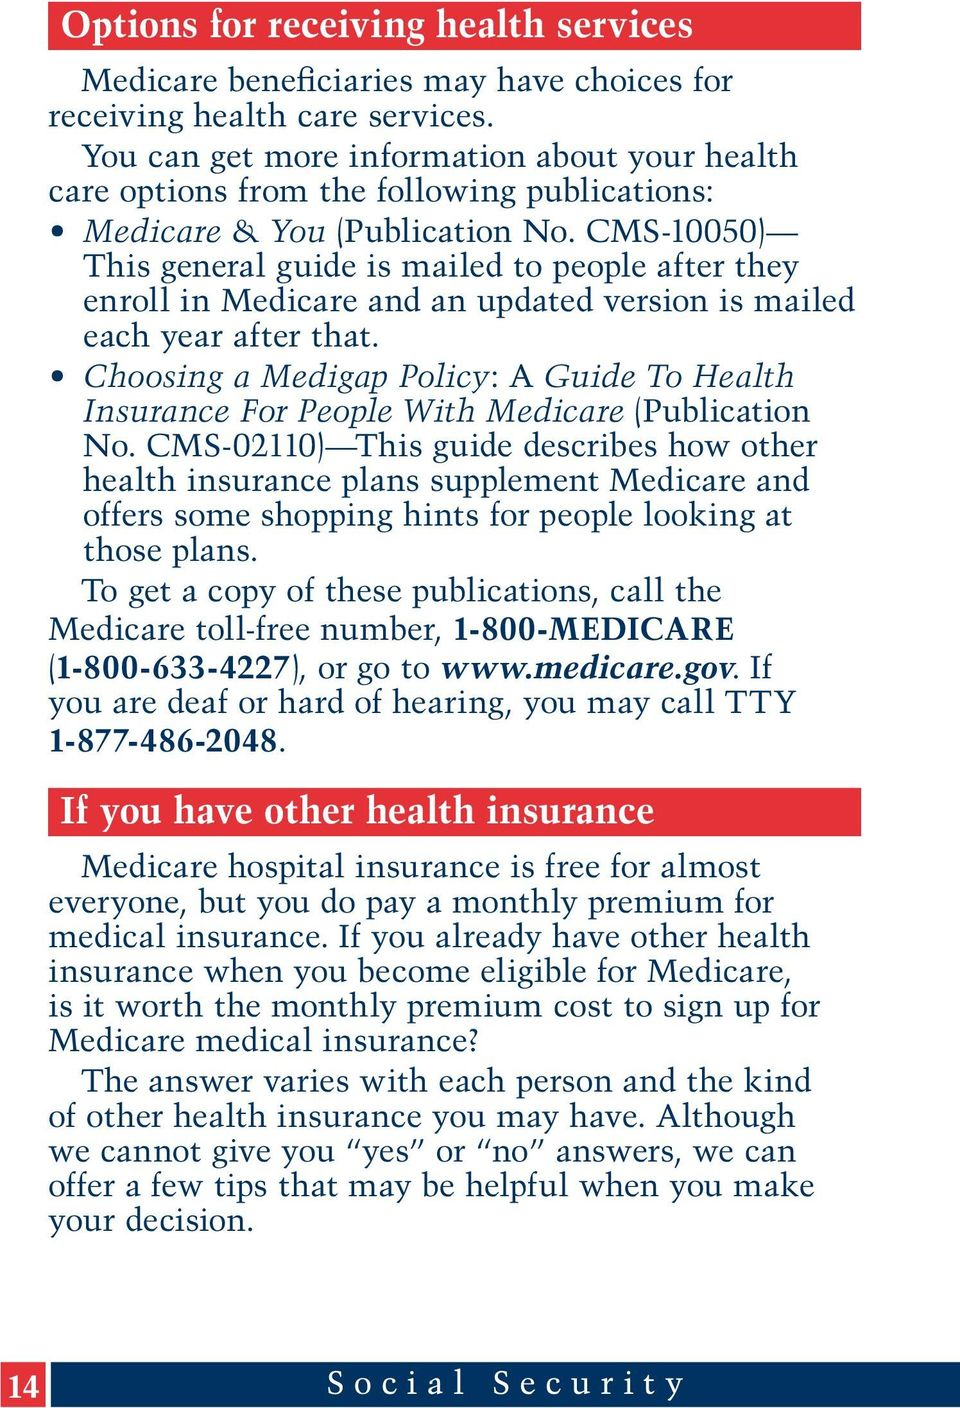 CMS-10050) This general guide is mailed to people after they enroll in Medicare and an updated version is mailed each year after that.